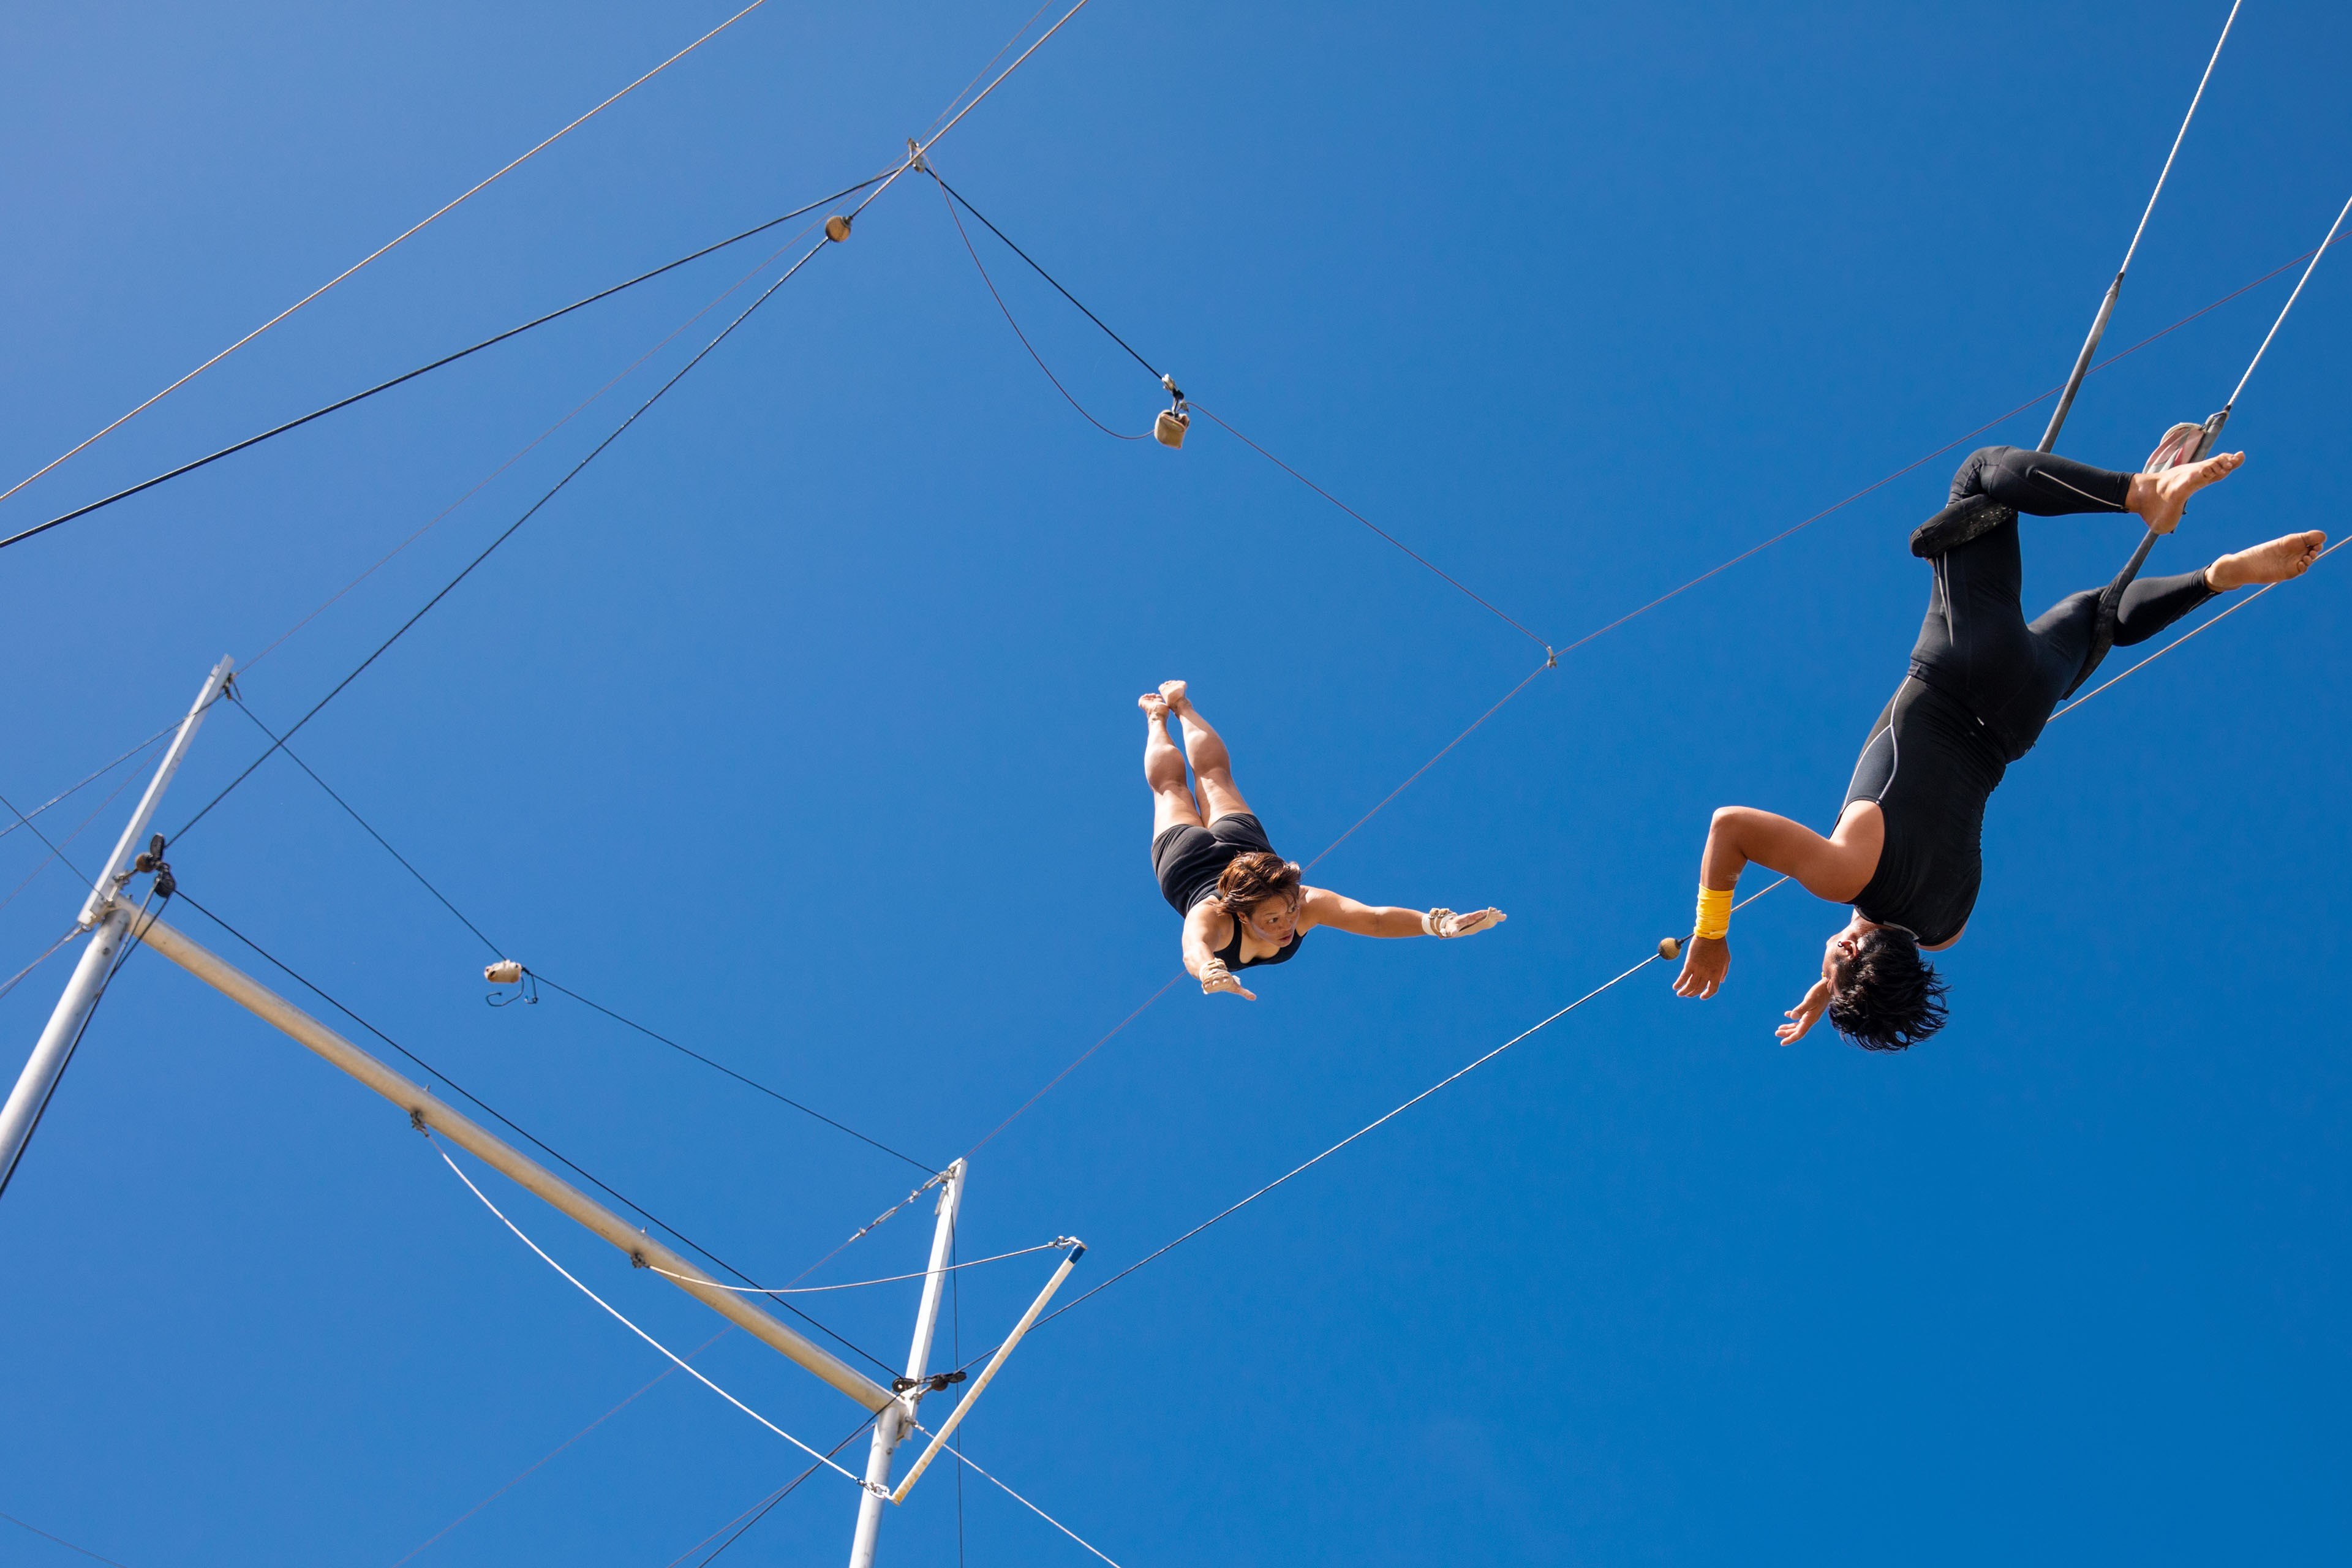 ey-trapeze-artists-practicing-against-the-blue-sky